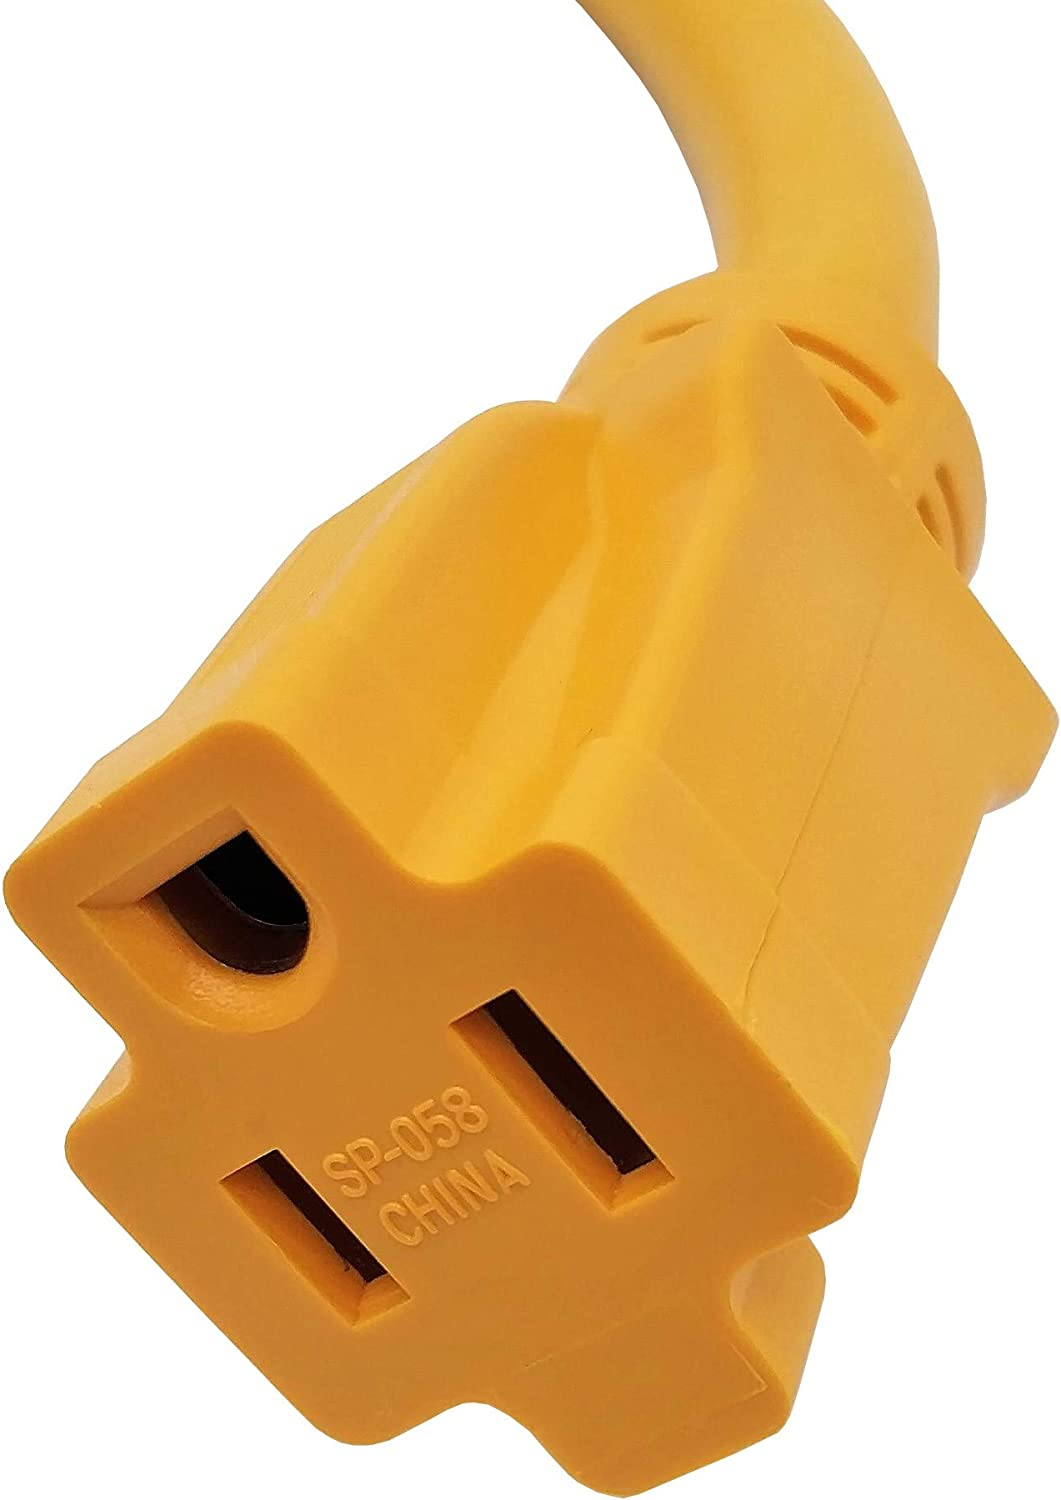 Parkworld 691975 RV Pigtail Shore Power 30A to 15A Dogbone Adapter Power Cord Twist Lock L5-30P Male to 5-15R Female: Sports & Outdoors